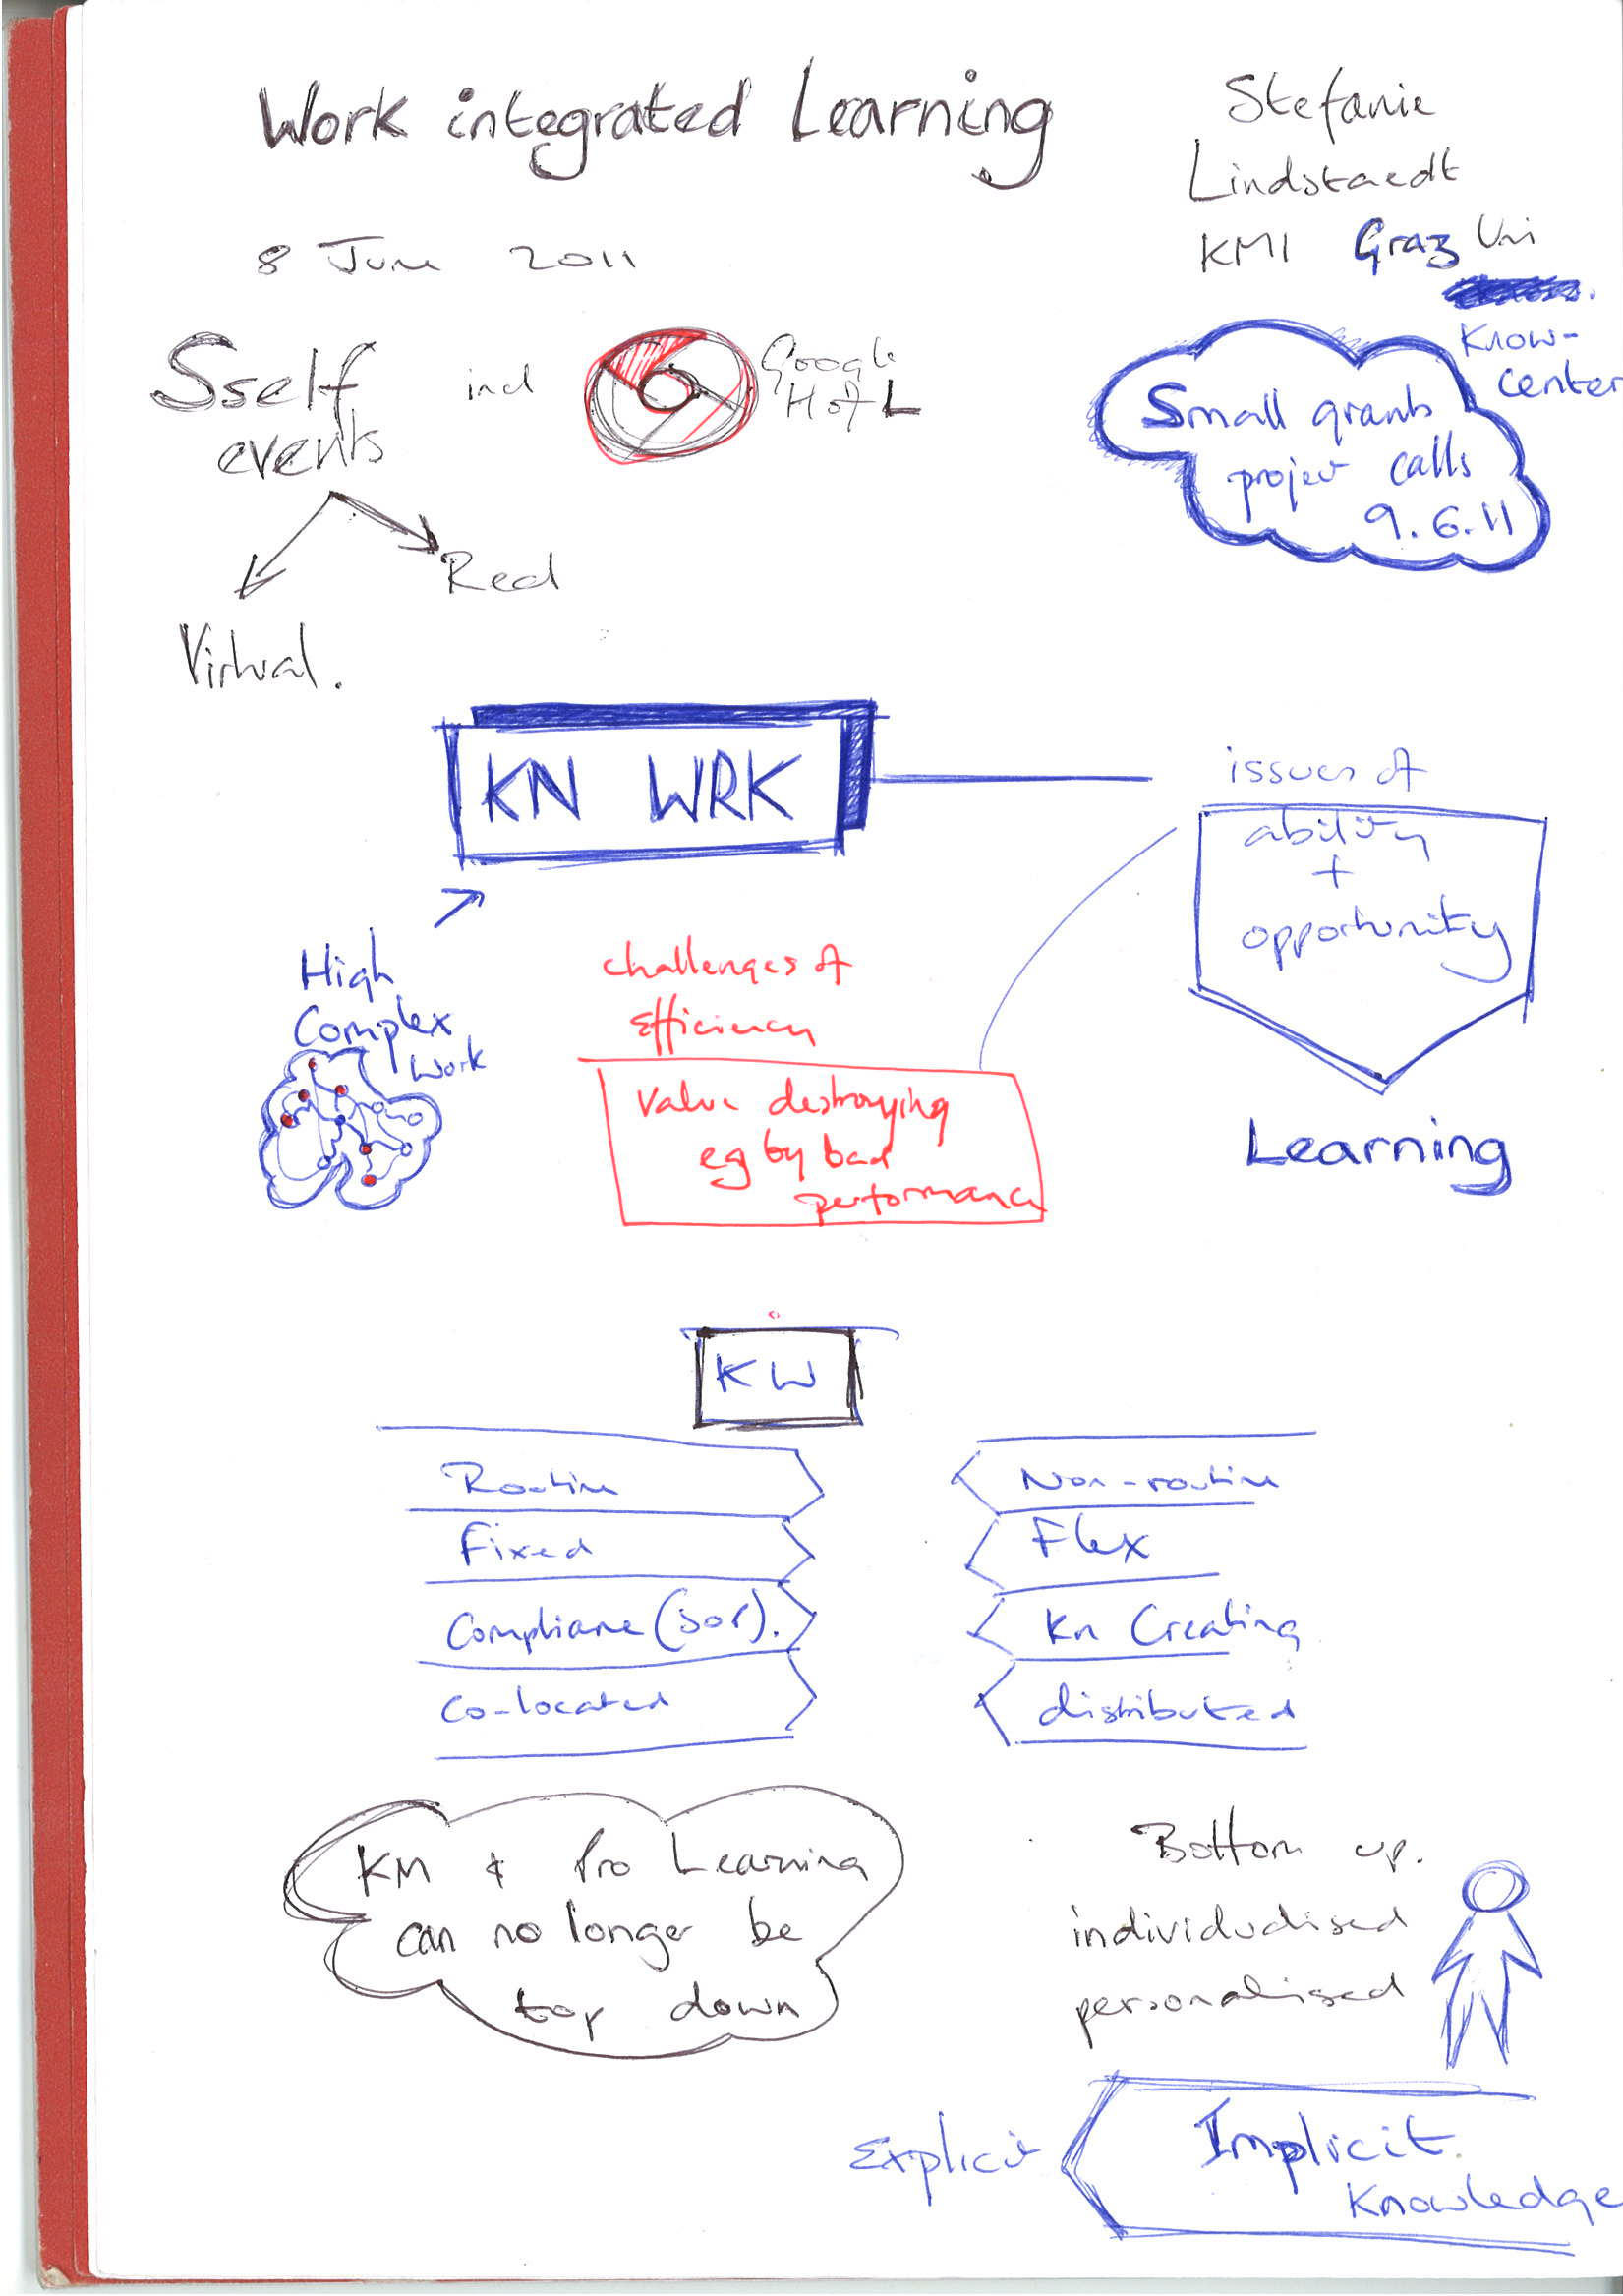 Notes from seminar on Work Integrated Learning